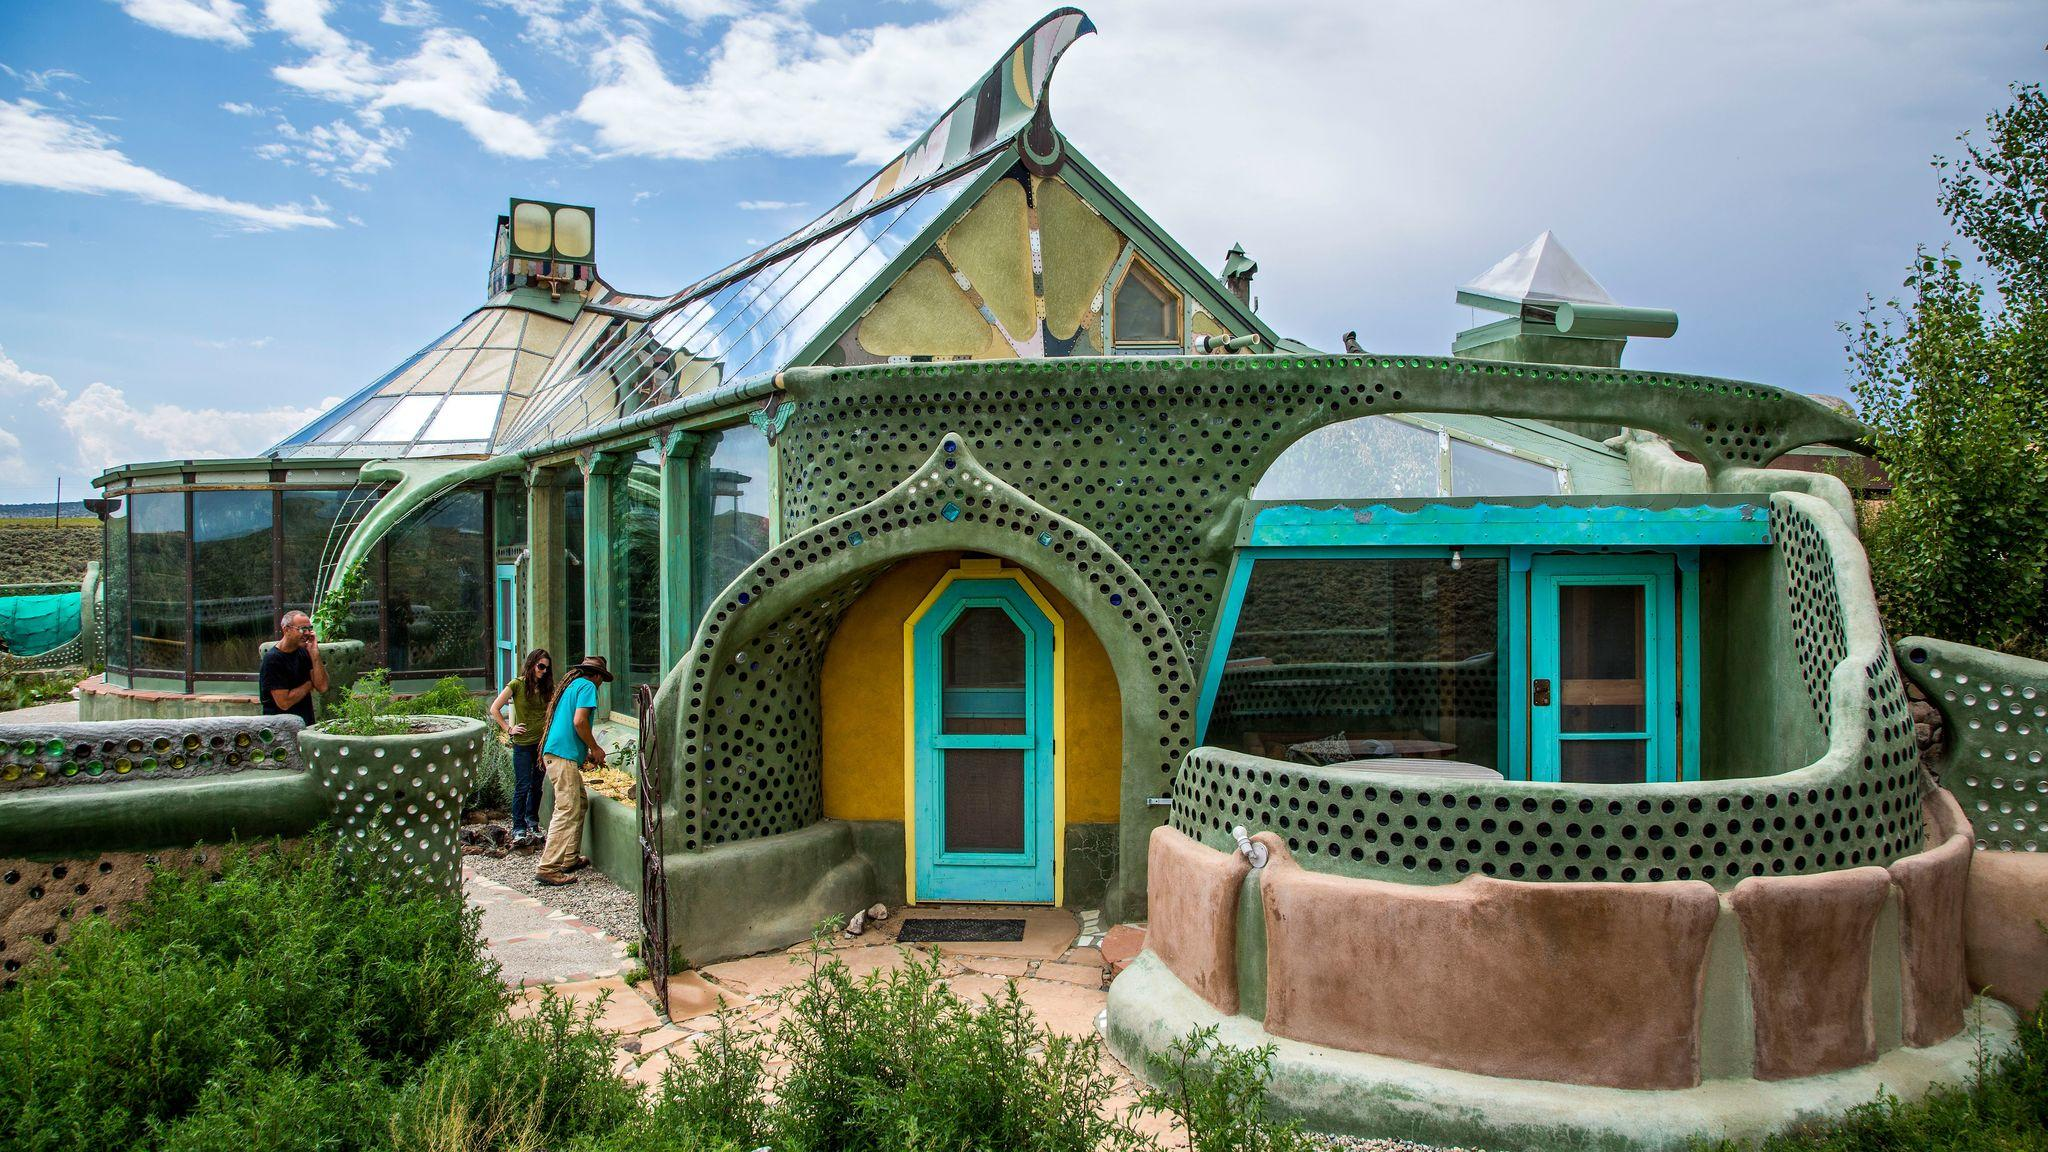 Phoenix Earthship at the Greater World Community outside Taos, New Mexico.